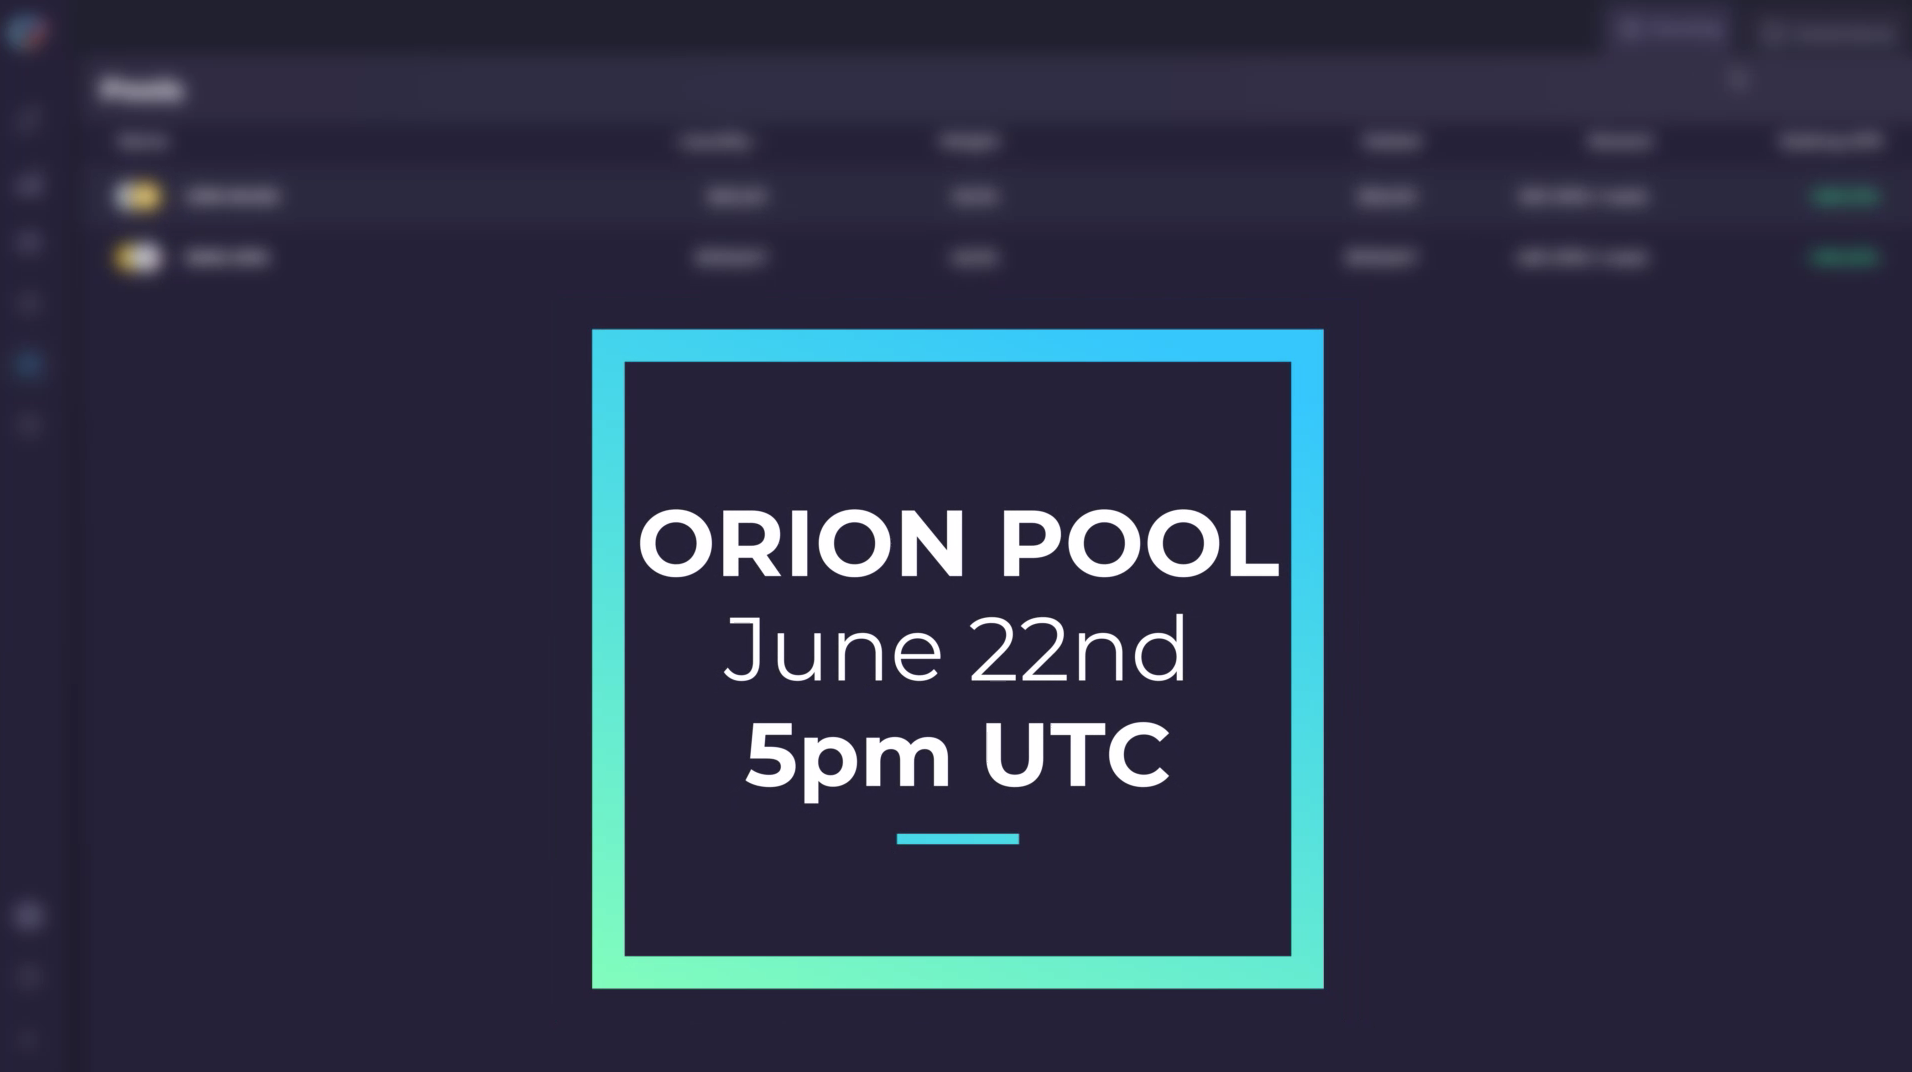 Orion Pool live at 5pm UTC | June 22nd